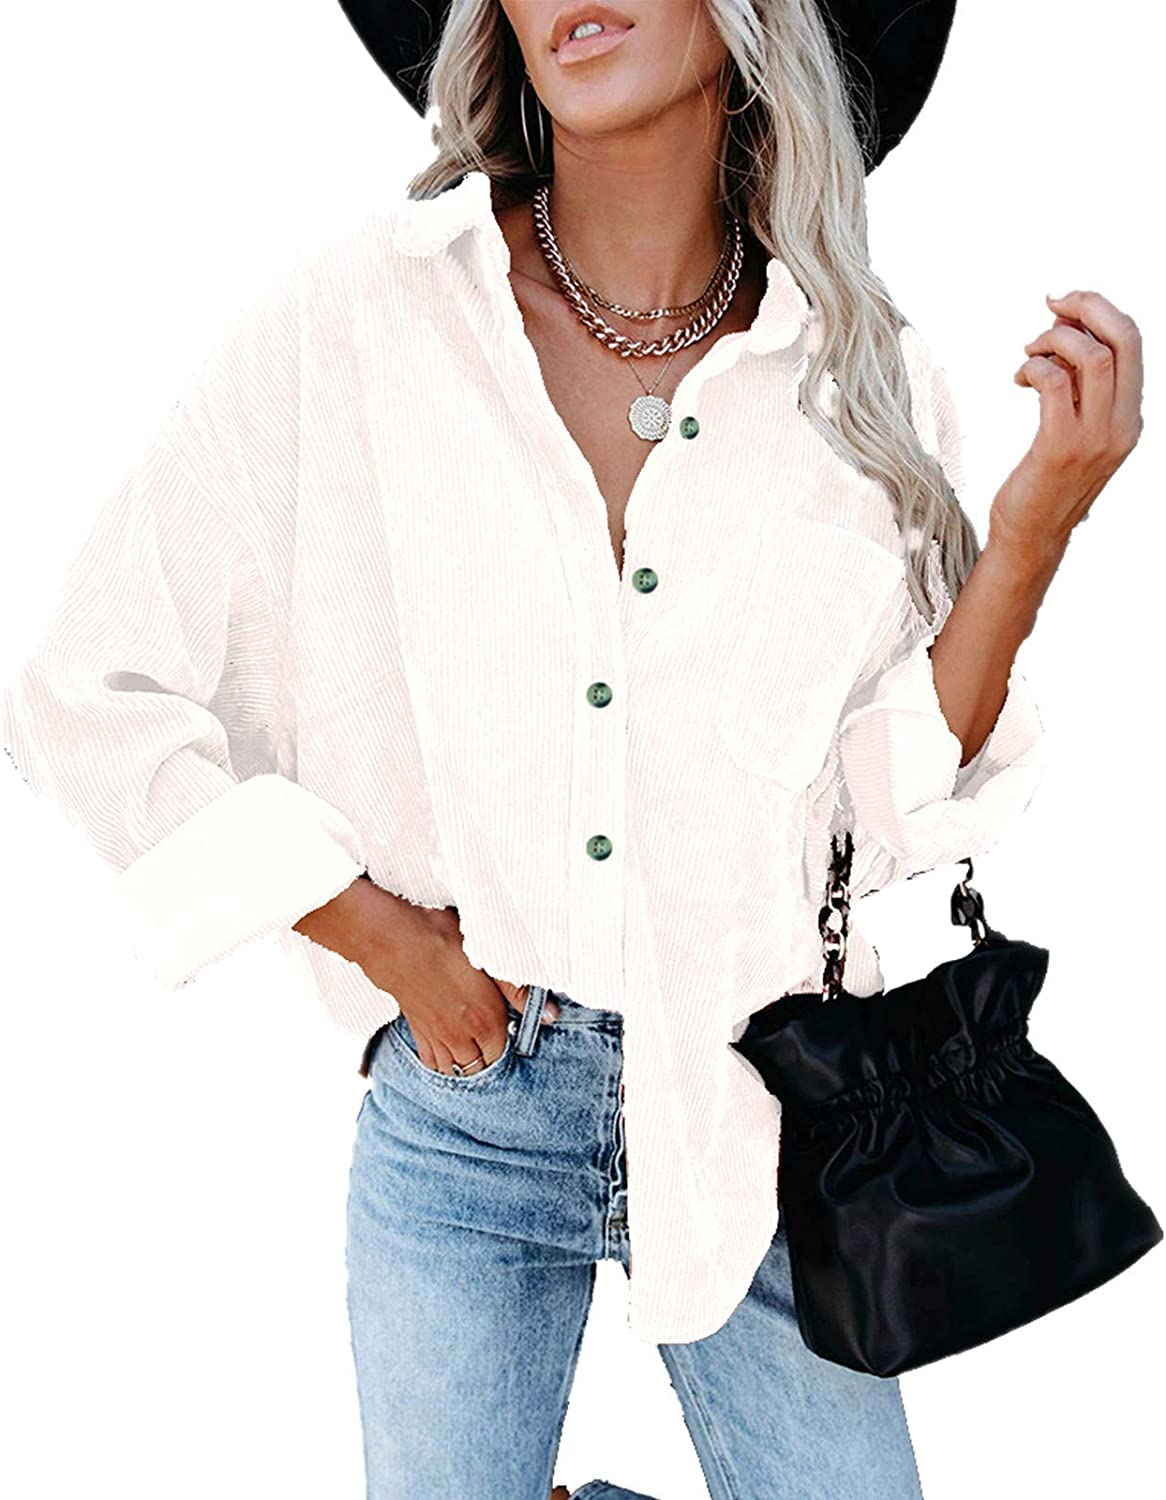 Women's Casual Long Sleeve Collared Shirts Tops Loose Fit Button Down Plain Outer Wear Blouses